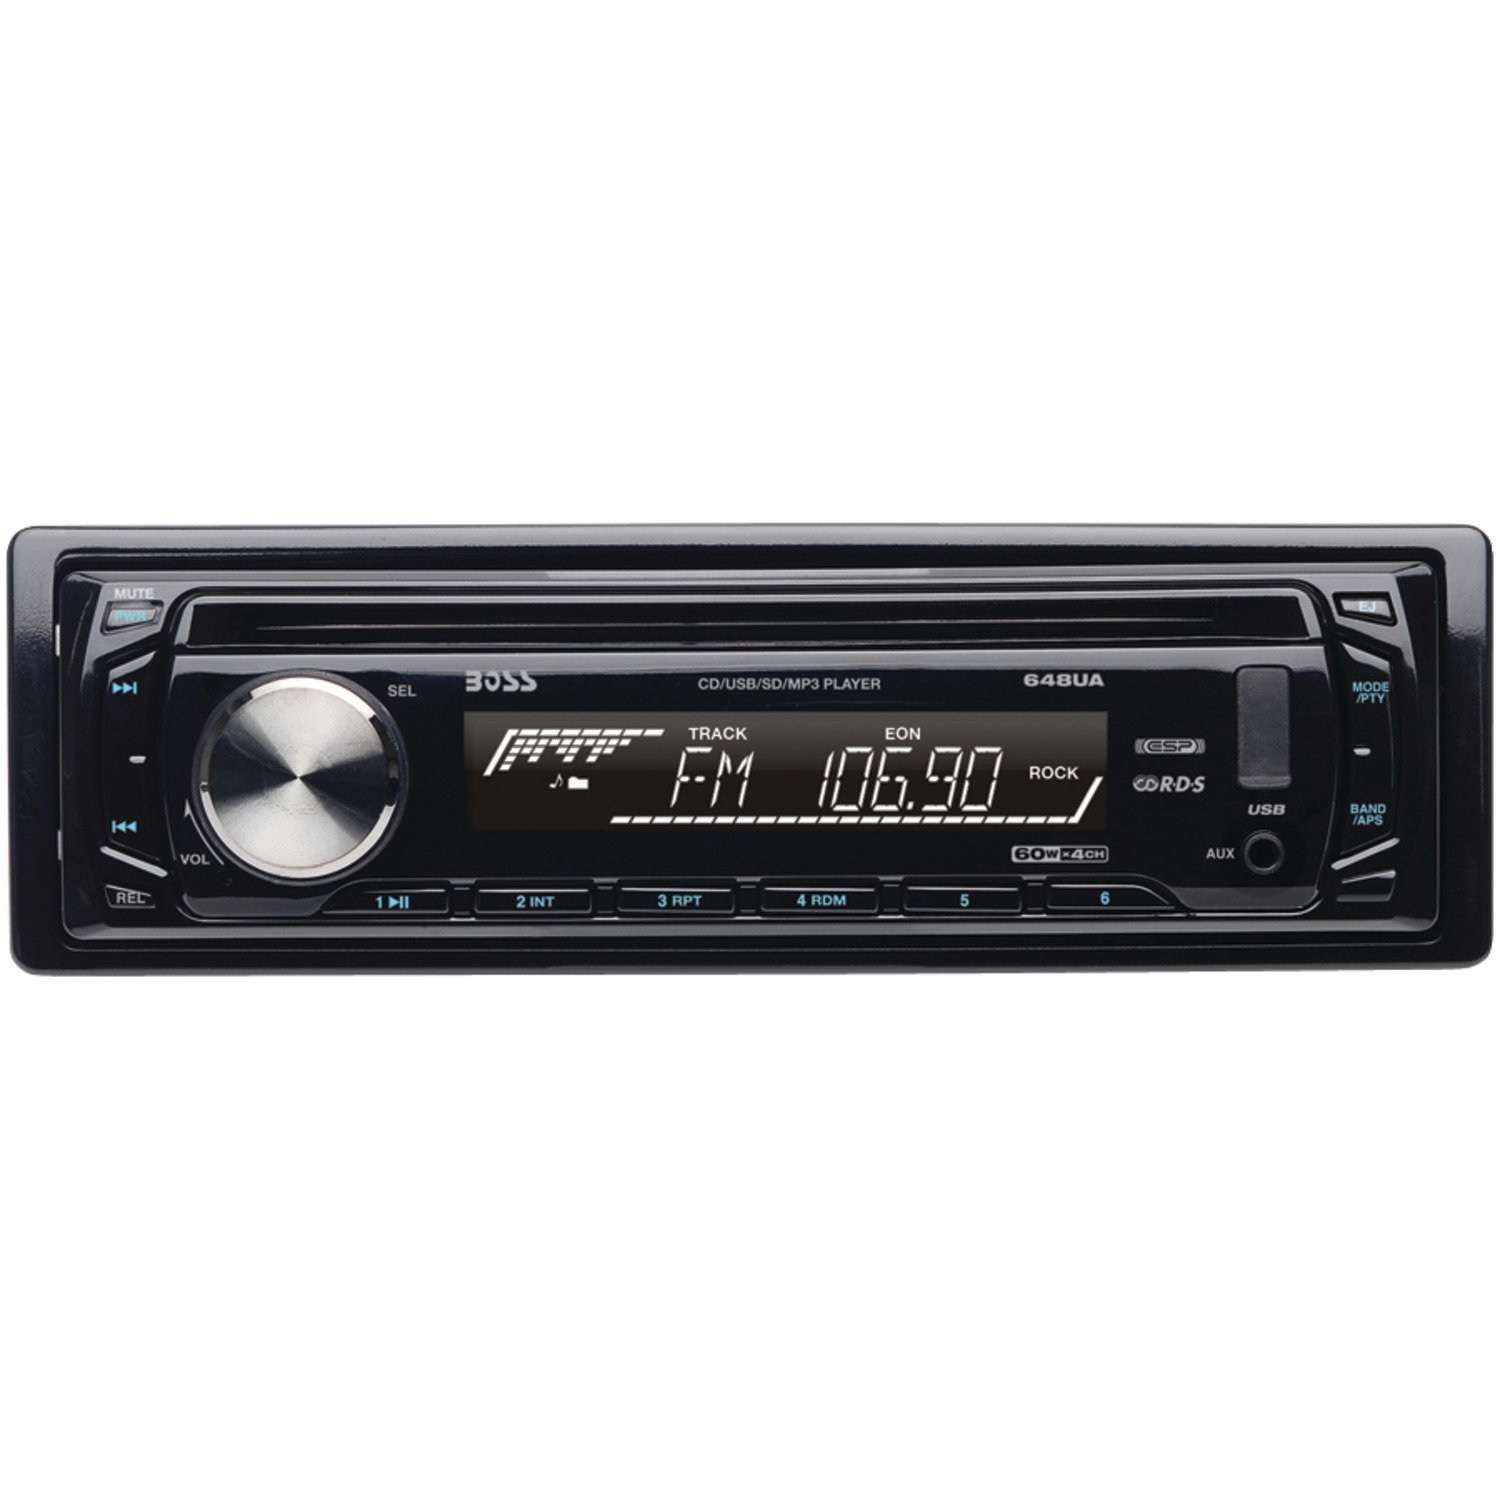 amazon com: boss audio 648ua single-din mp3 player receiver: car electronics